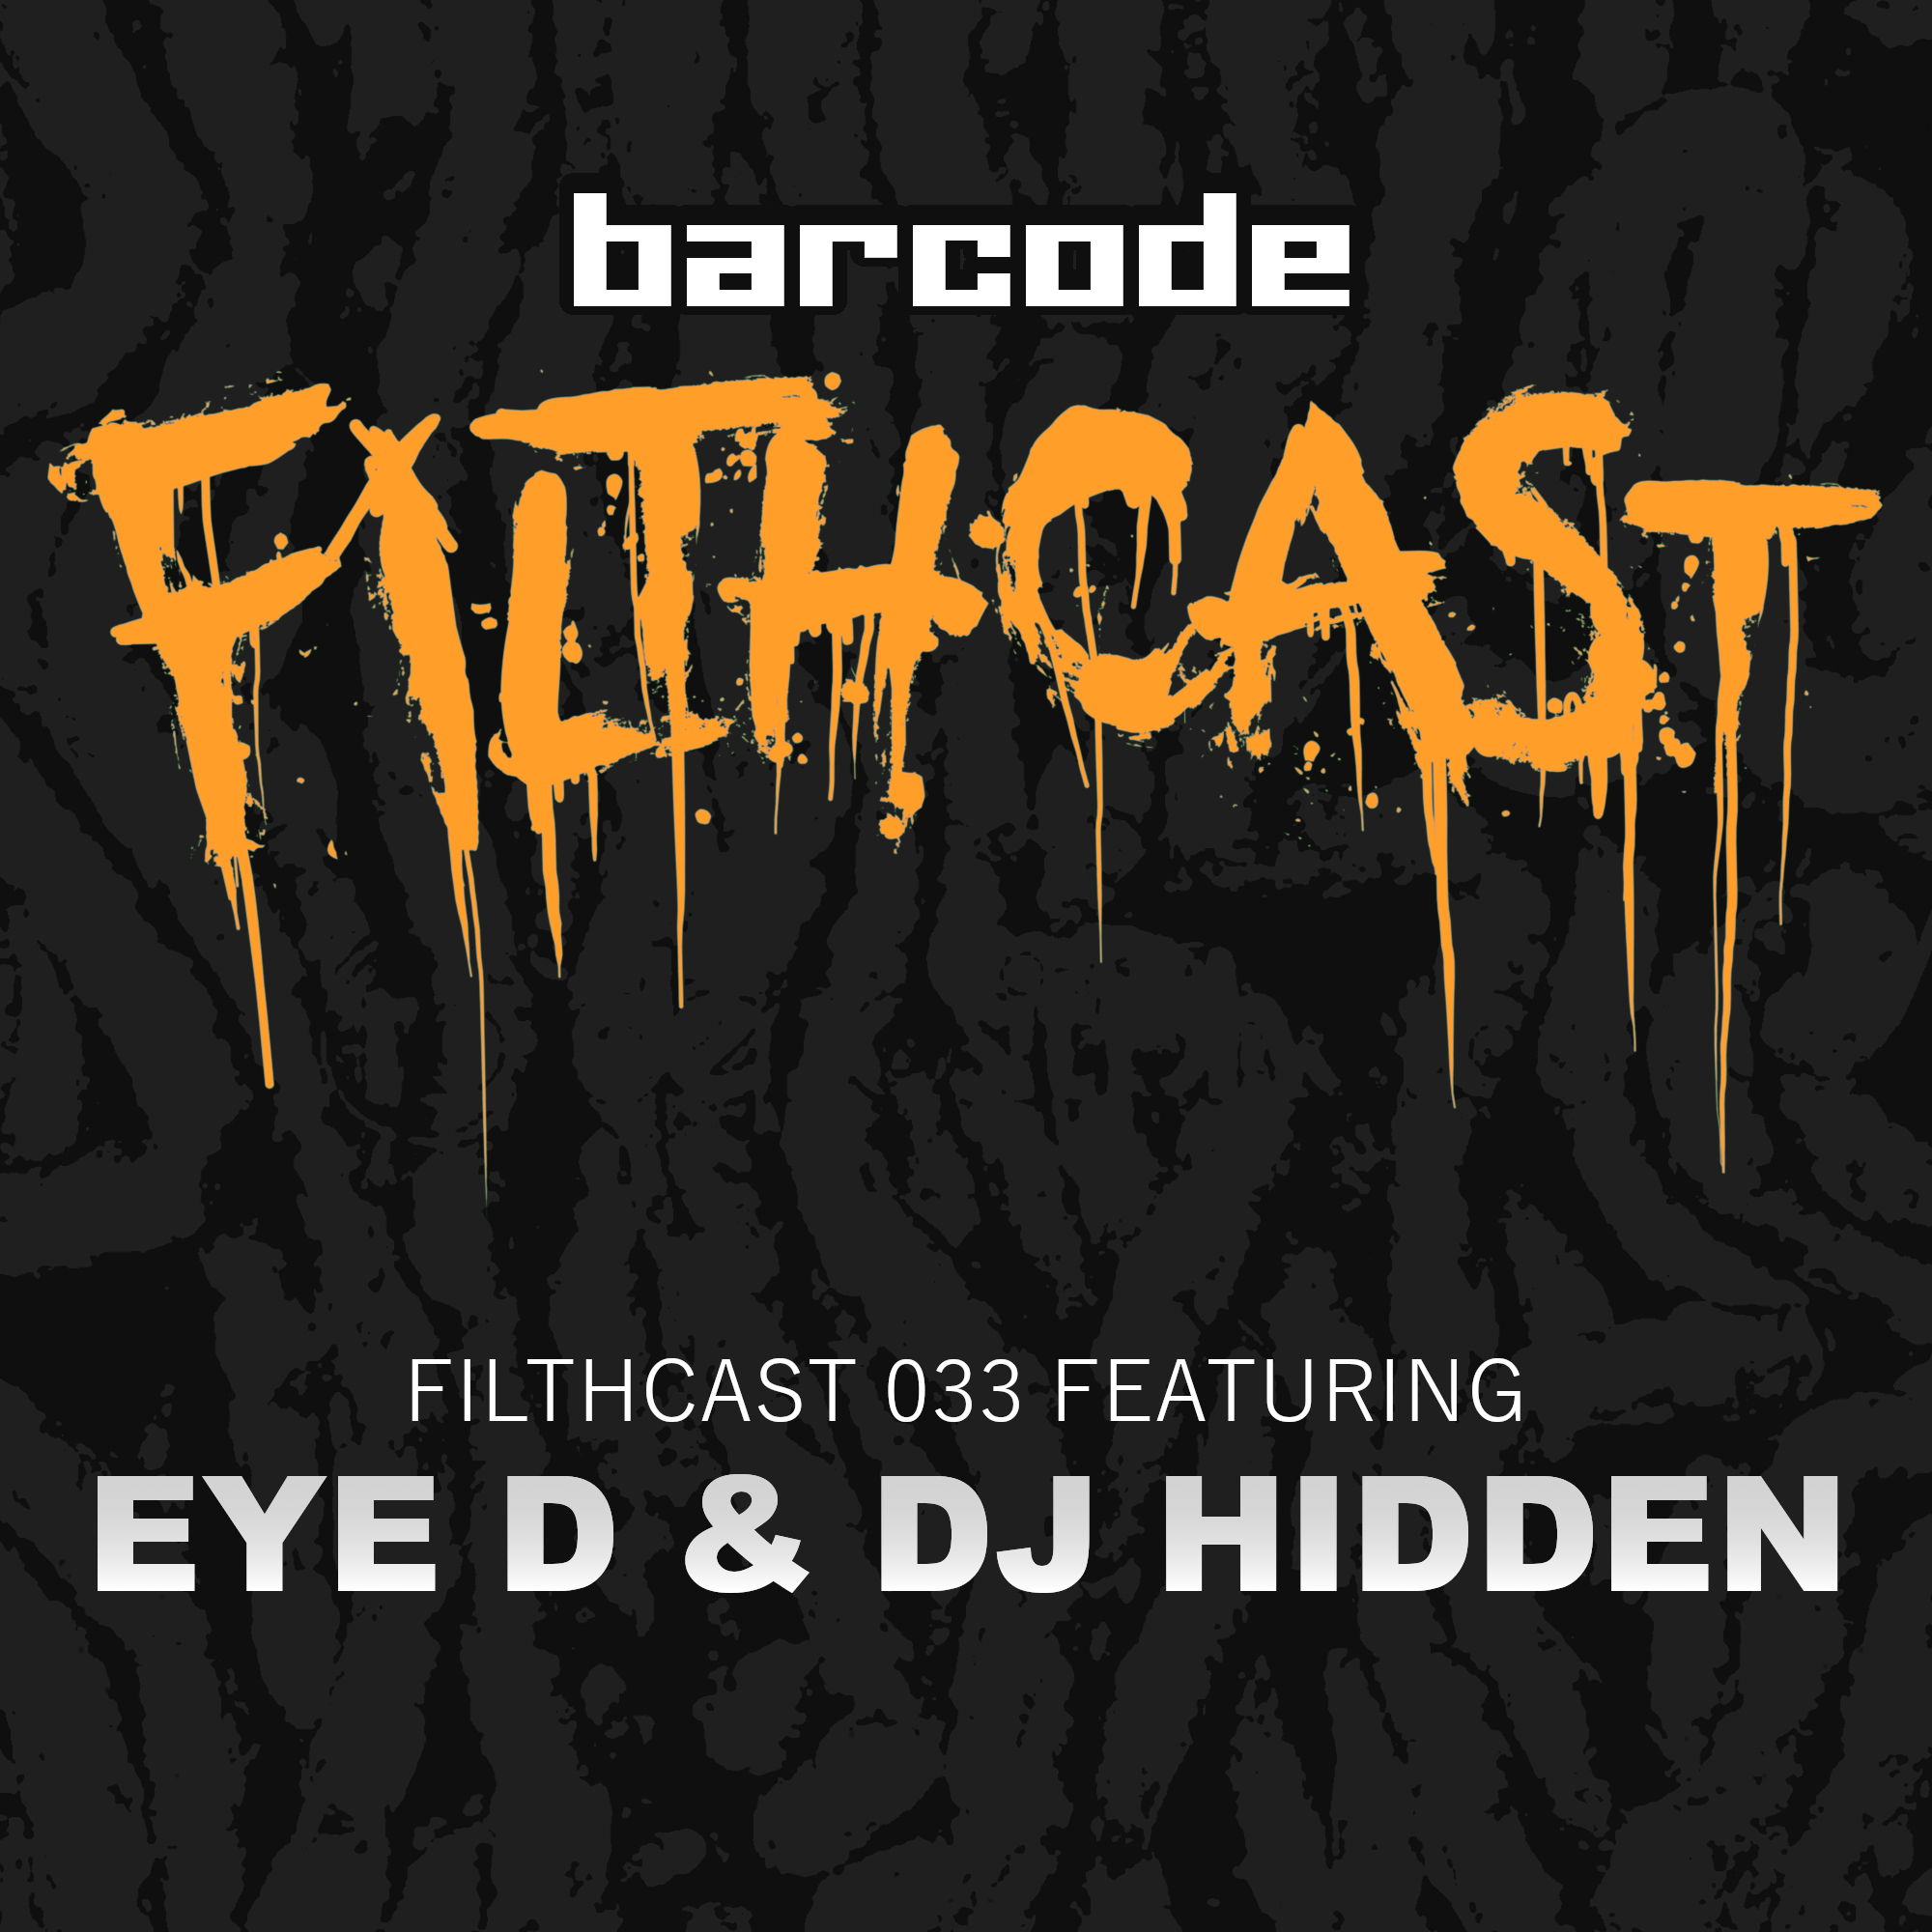 Dutch duo, Eye-D & DJ Hidden present the 33rd instalment of the Filthcast, showcasing unreleased tracks from their forthcoming album 'Peer to Peer Pressure'. Having collaborated for a number of years under the alias The Outside Agency, together they masterfully blend elements of Drum & Bass, Hardcore and Dubstep.